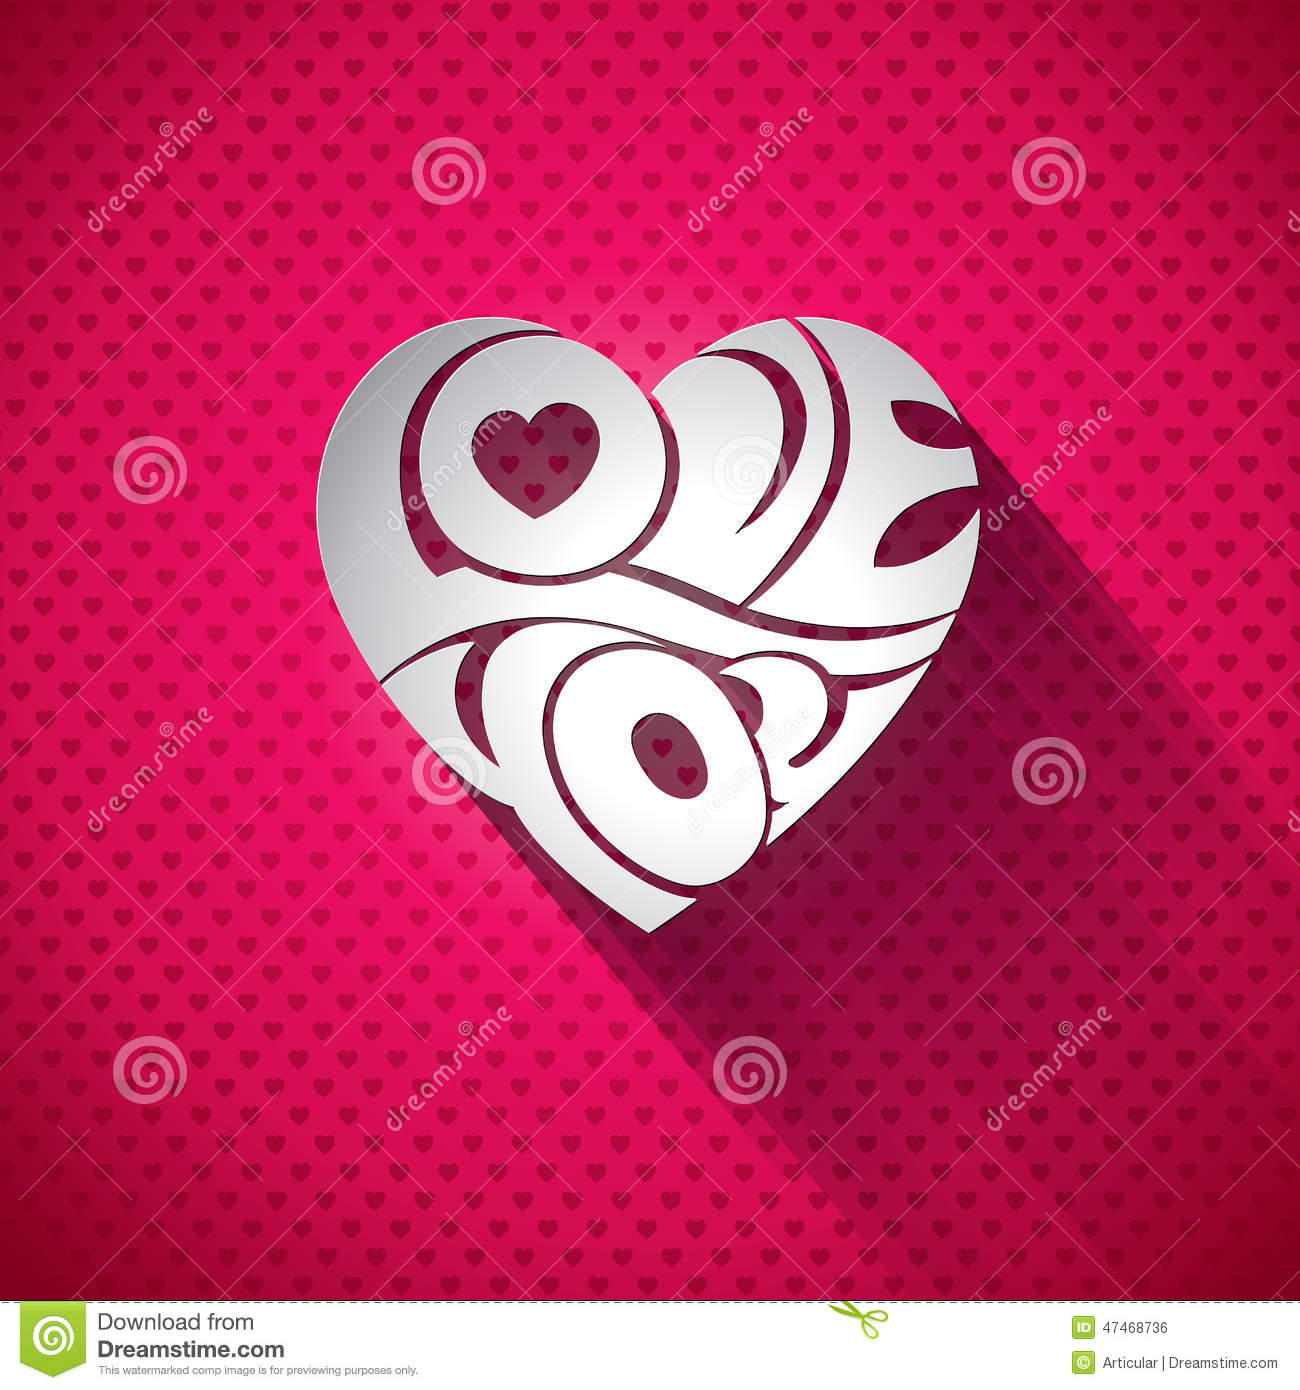 Vector Valentines Day illustration with 3d Love You typography design on heart background.